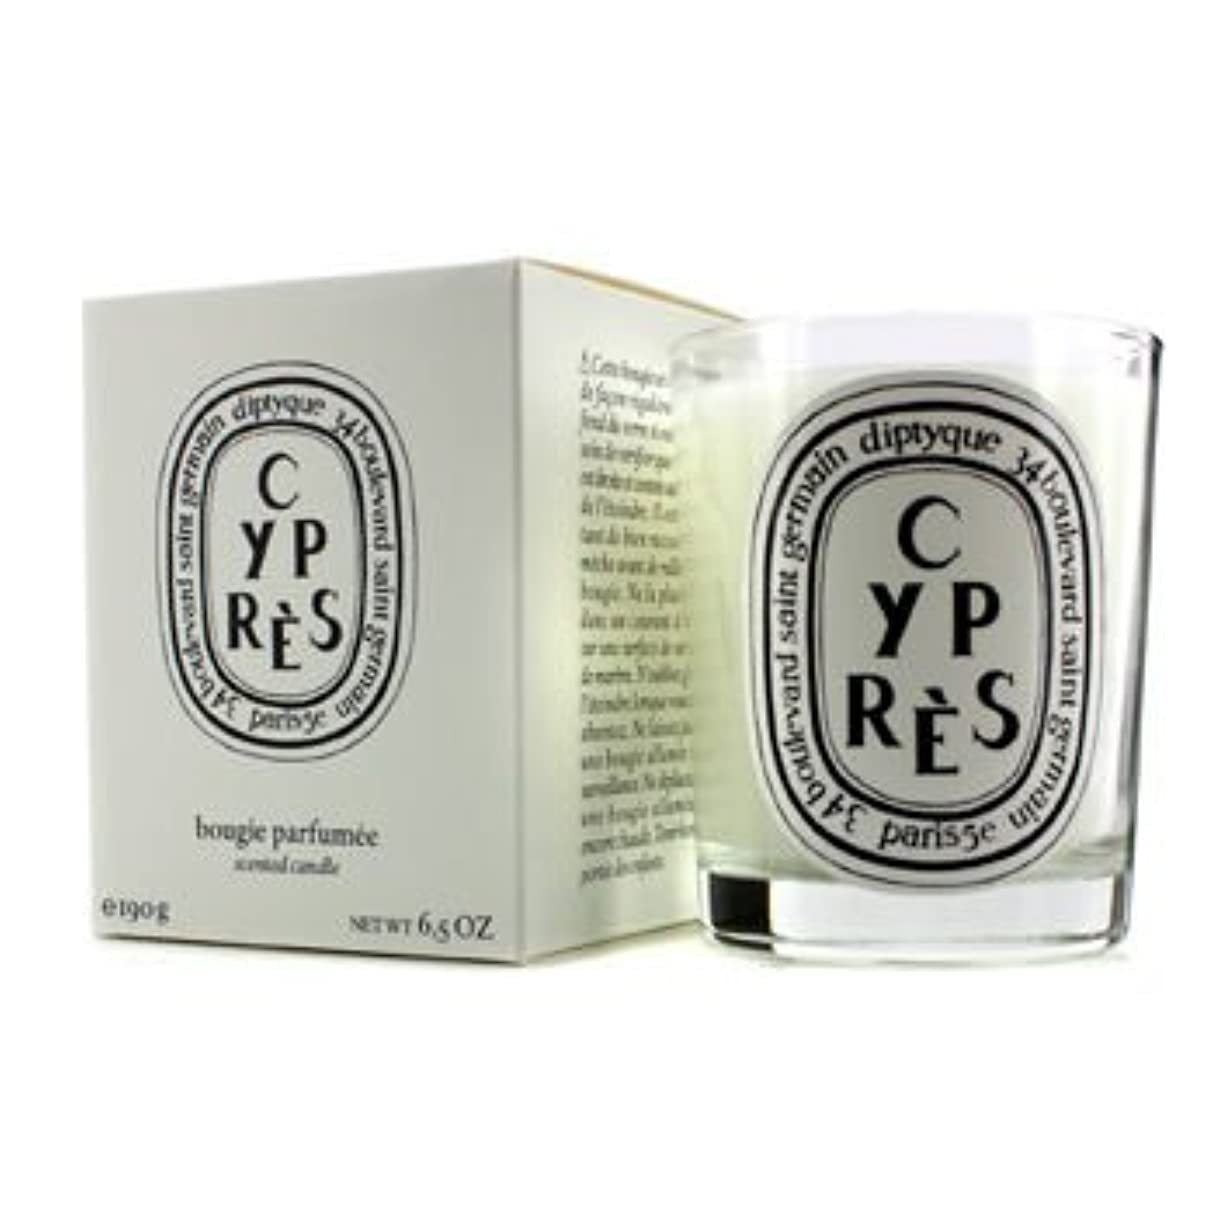 [Diptyque] Scented Candle - Cypres (Cypress) 190g/6.5oz